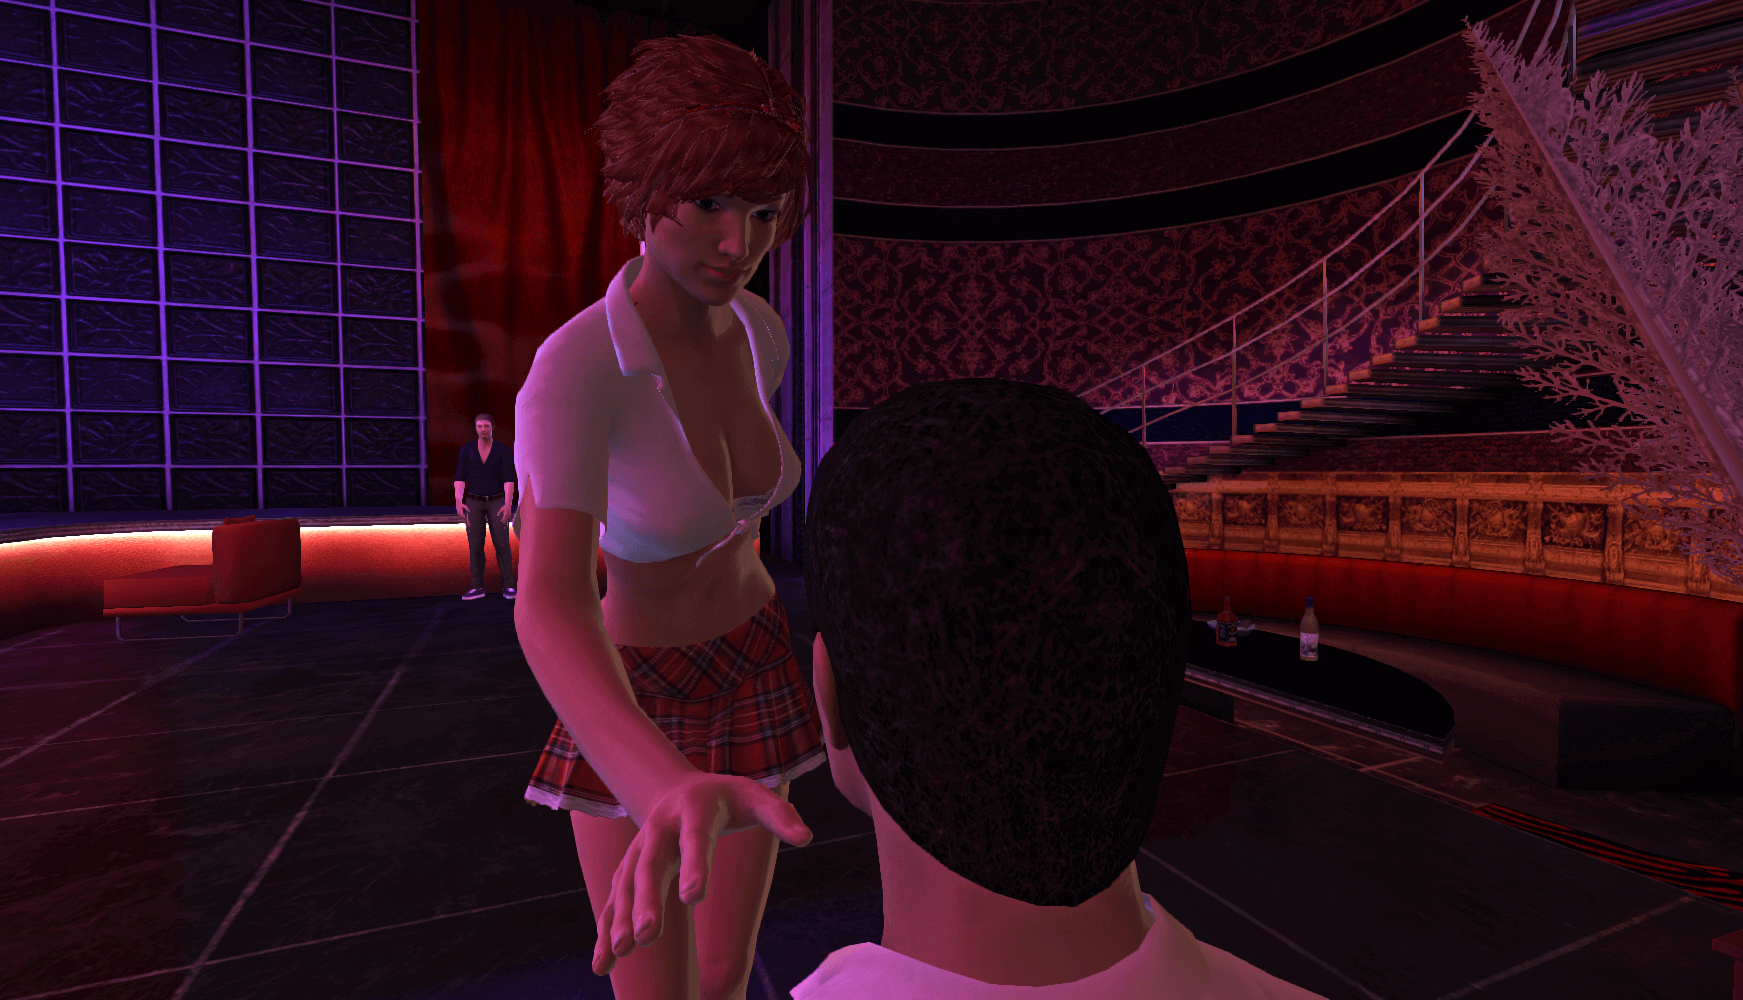 Sex games like second life